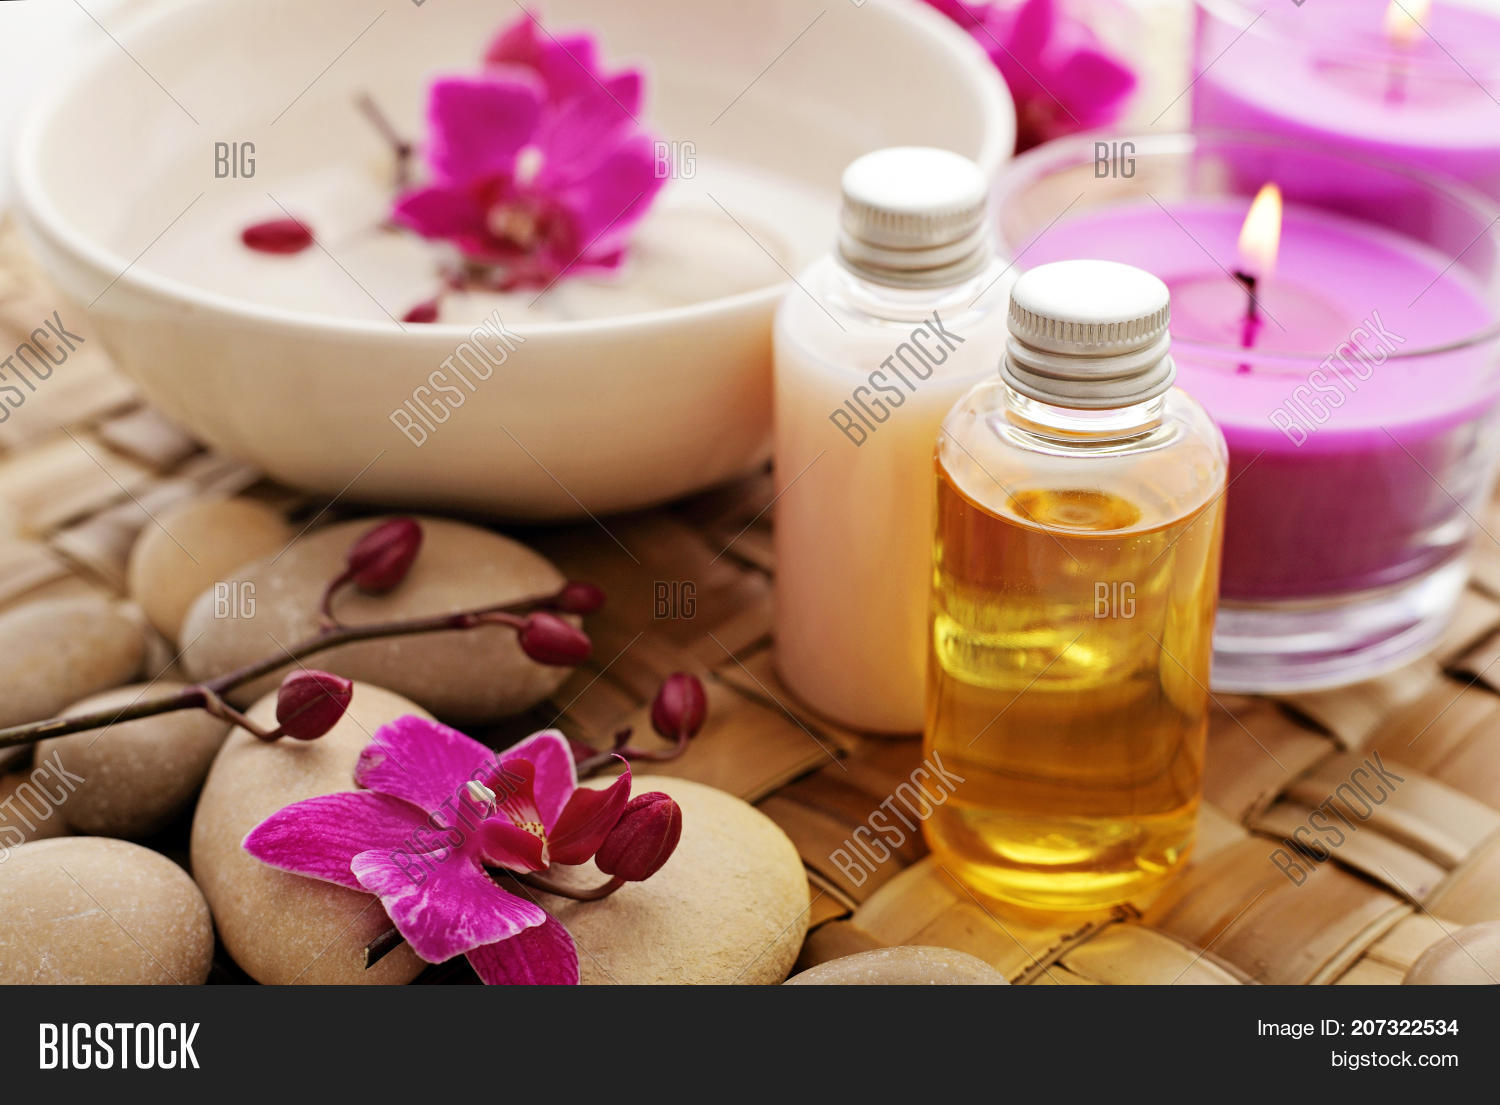 Massage Oil Bottles Image Photo Free Trial Bigstock